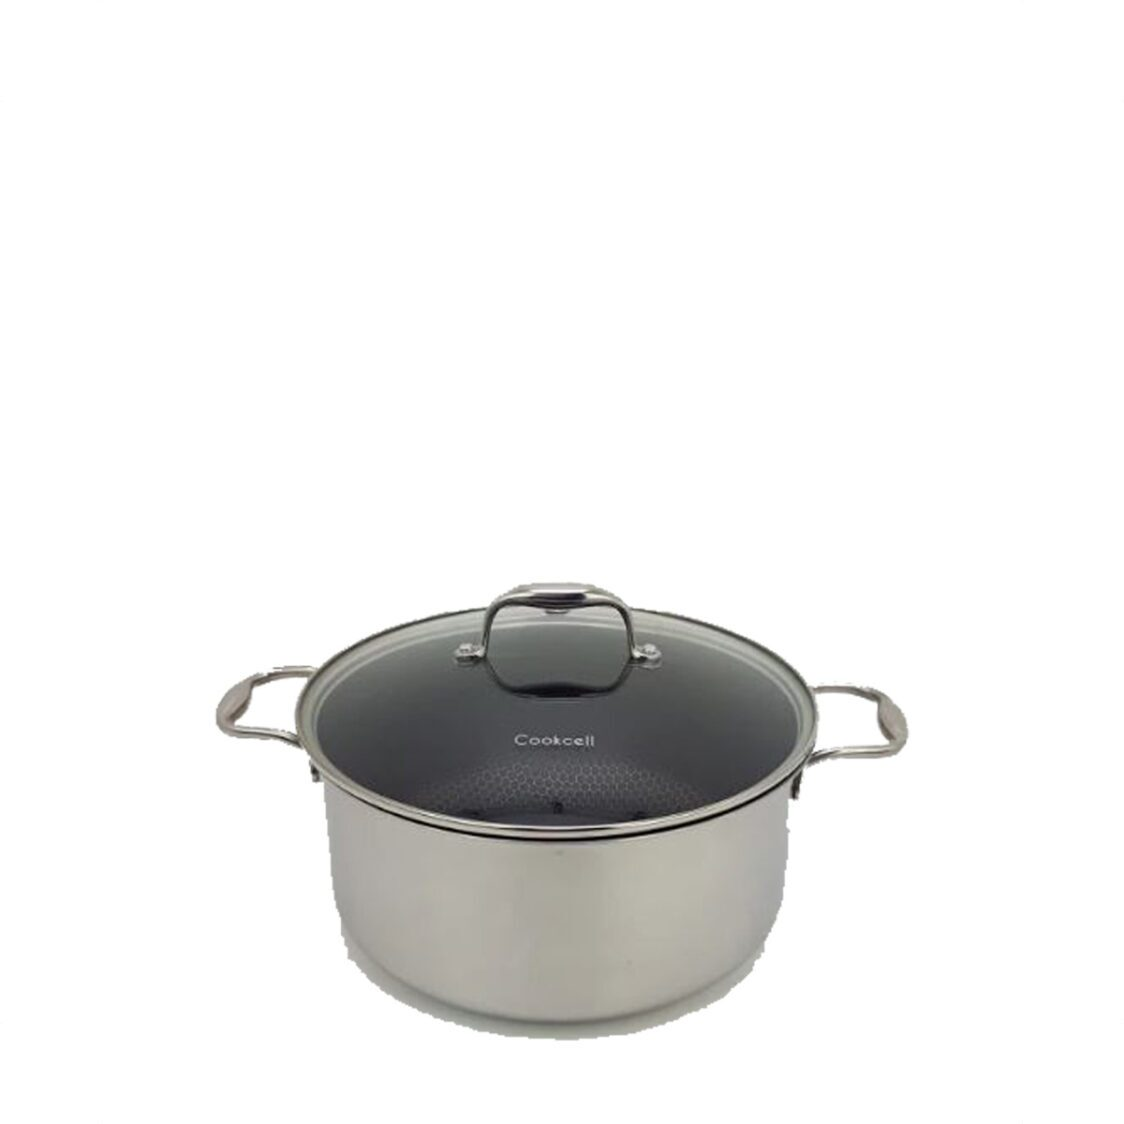 Cookcell Blackcube 24cm Stock Pot with Glass Lid